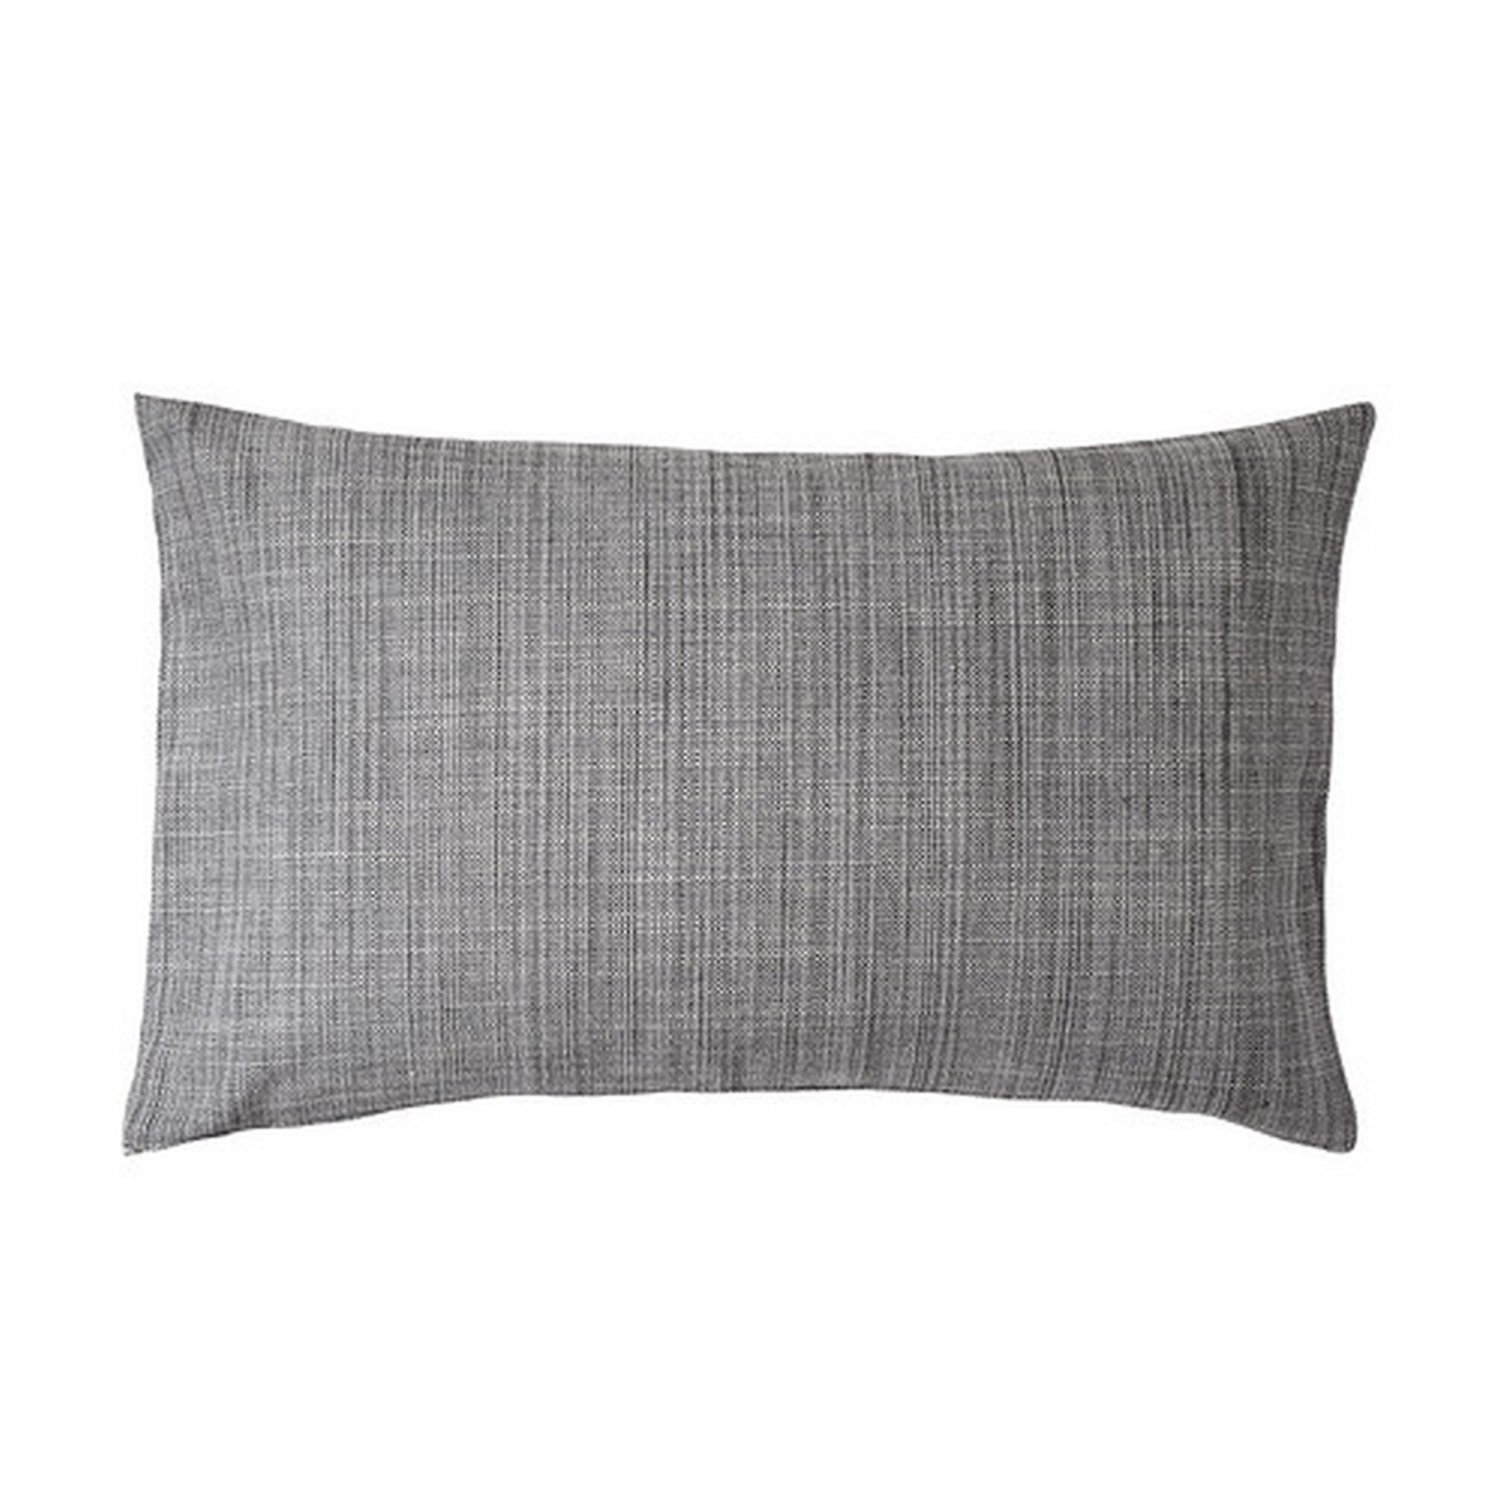 ikea isunda cushion cover pillow sham gray 16 x 26 grey linen lumbar. Black Bedroom Furniture Sets. Home Design Ideas